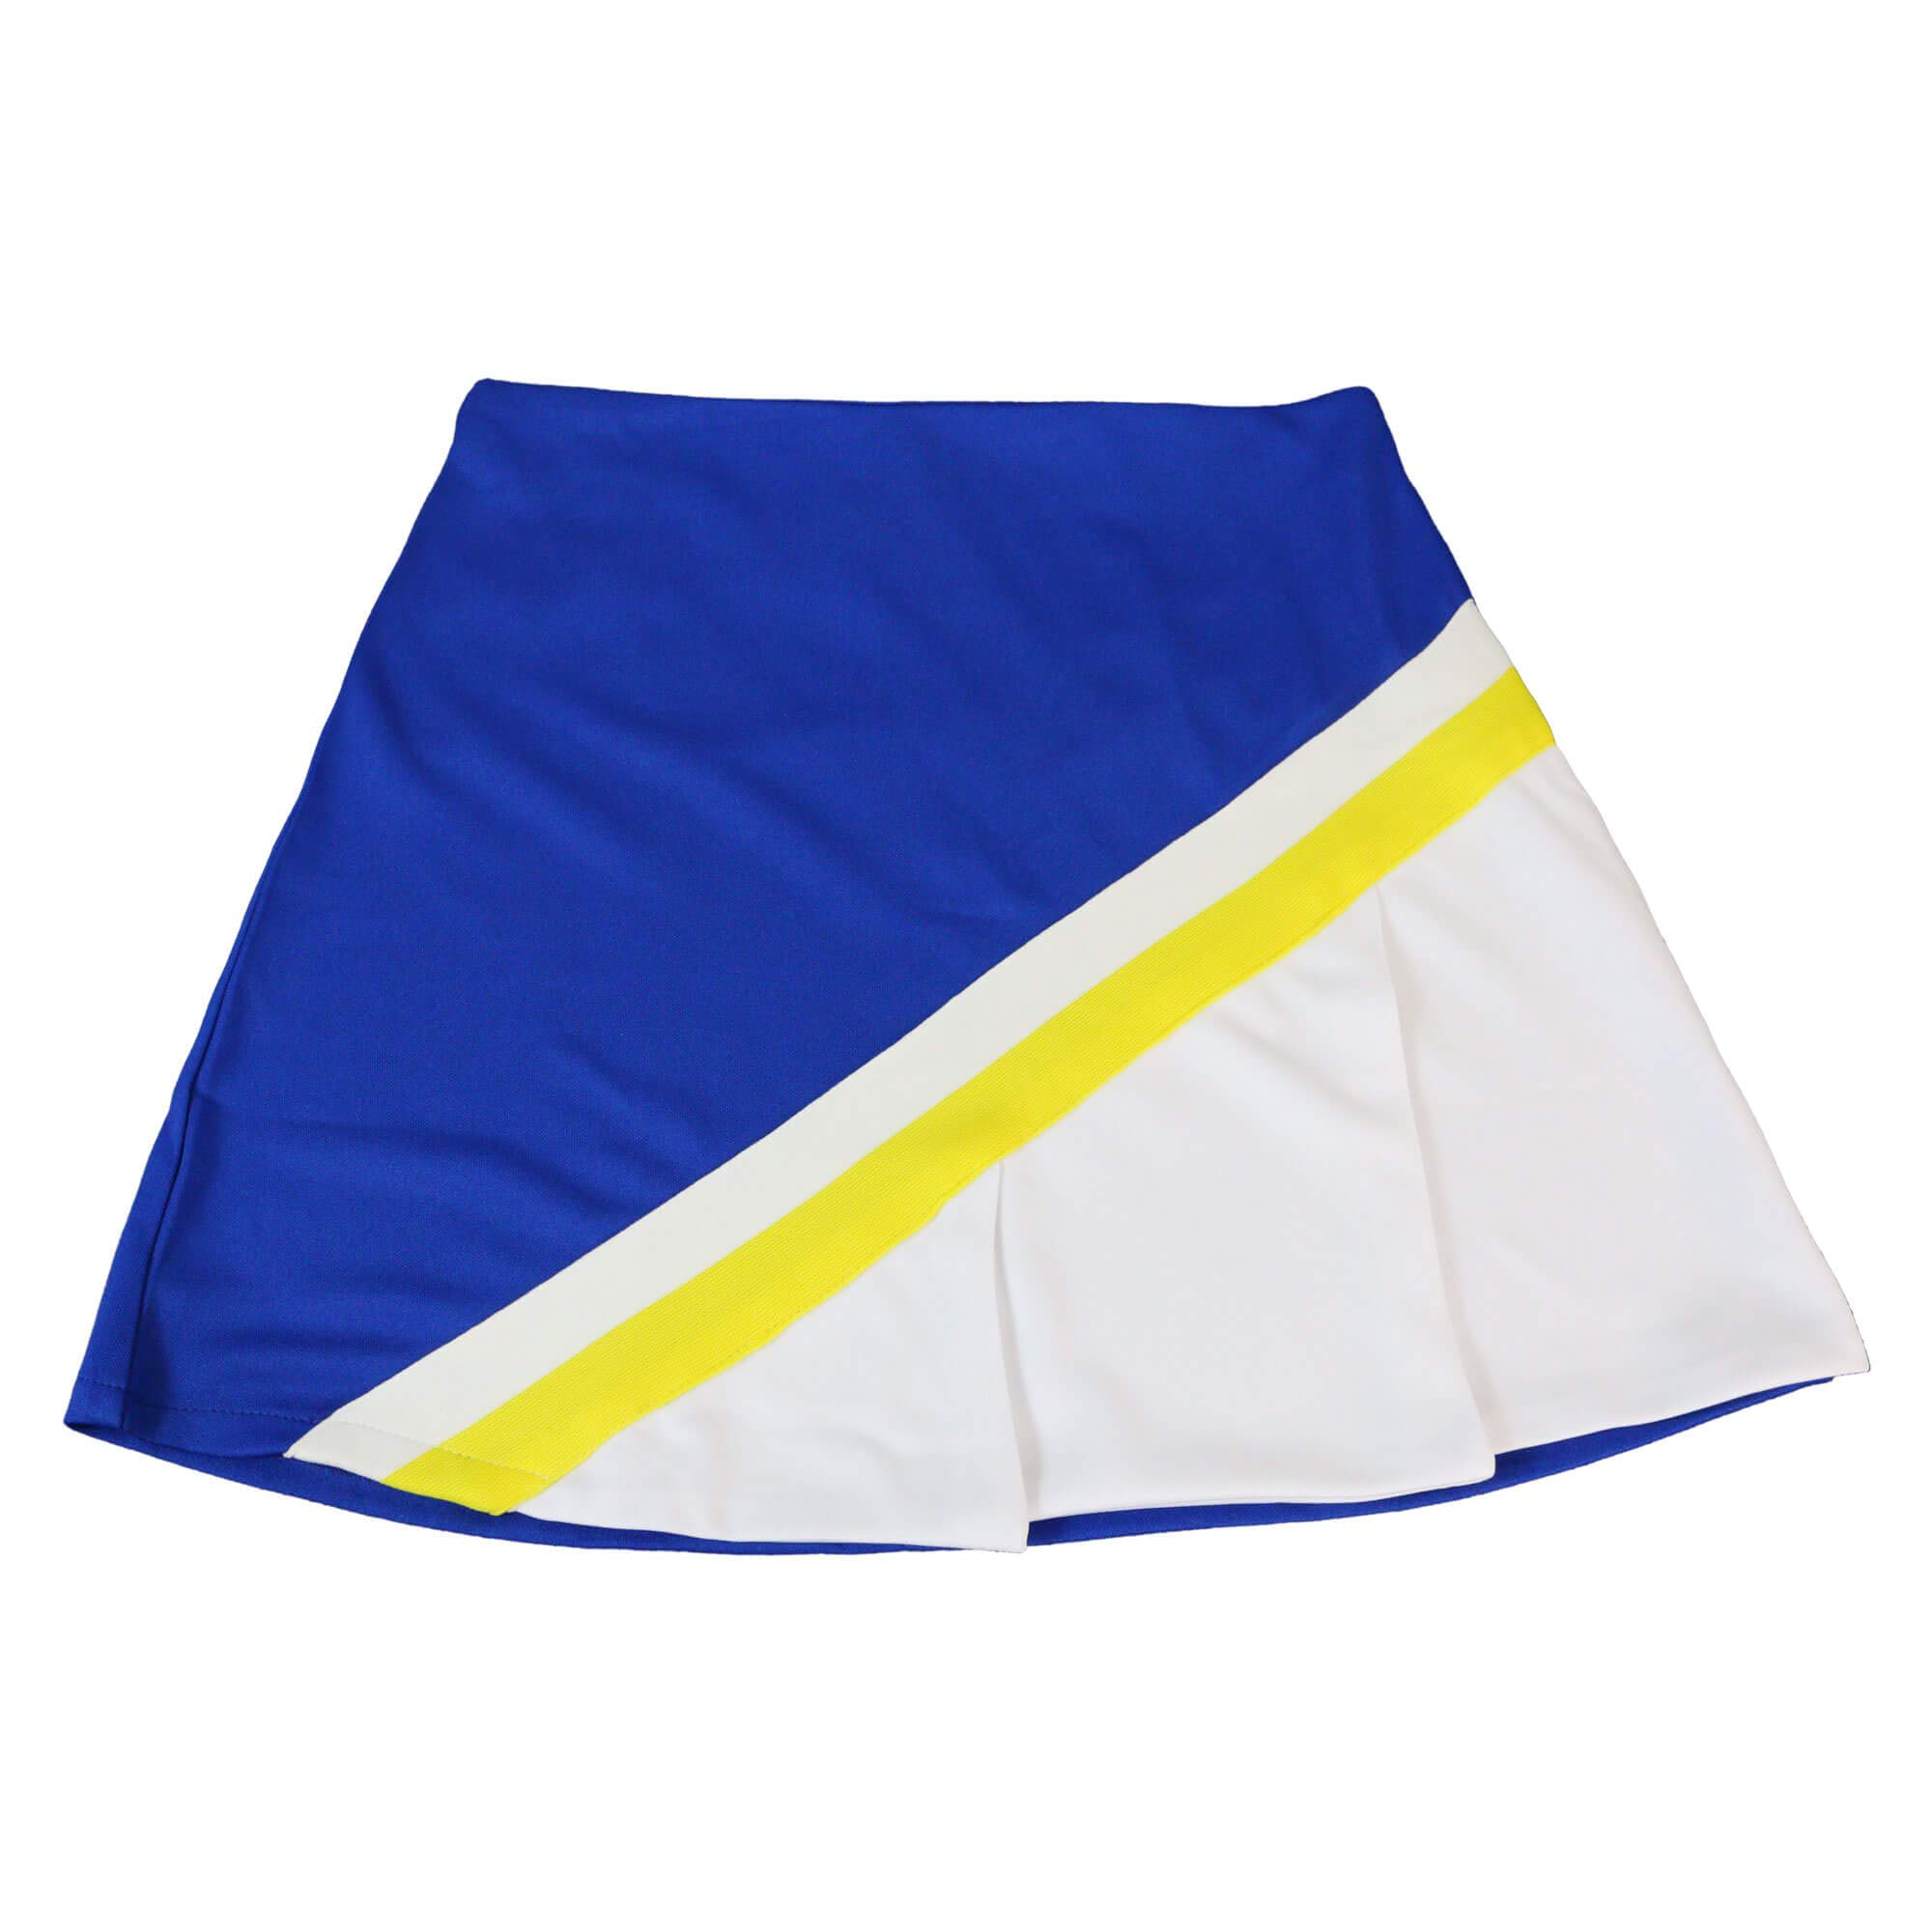 Danzcue Child Cheerleading A-Line Pleat Skirt, Royal-White, Large by Danzcue